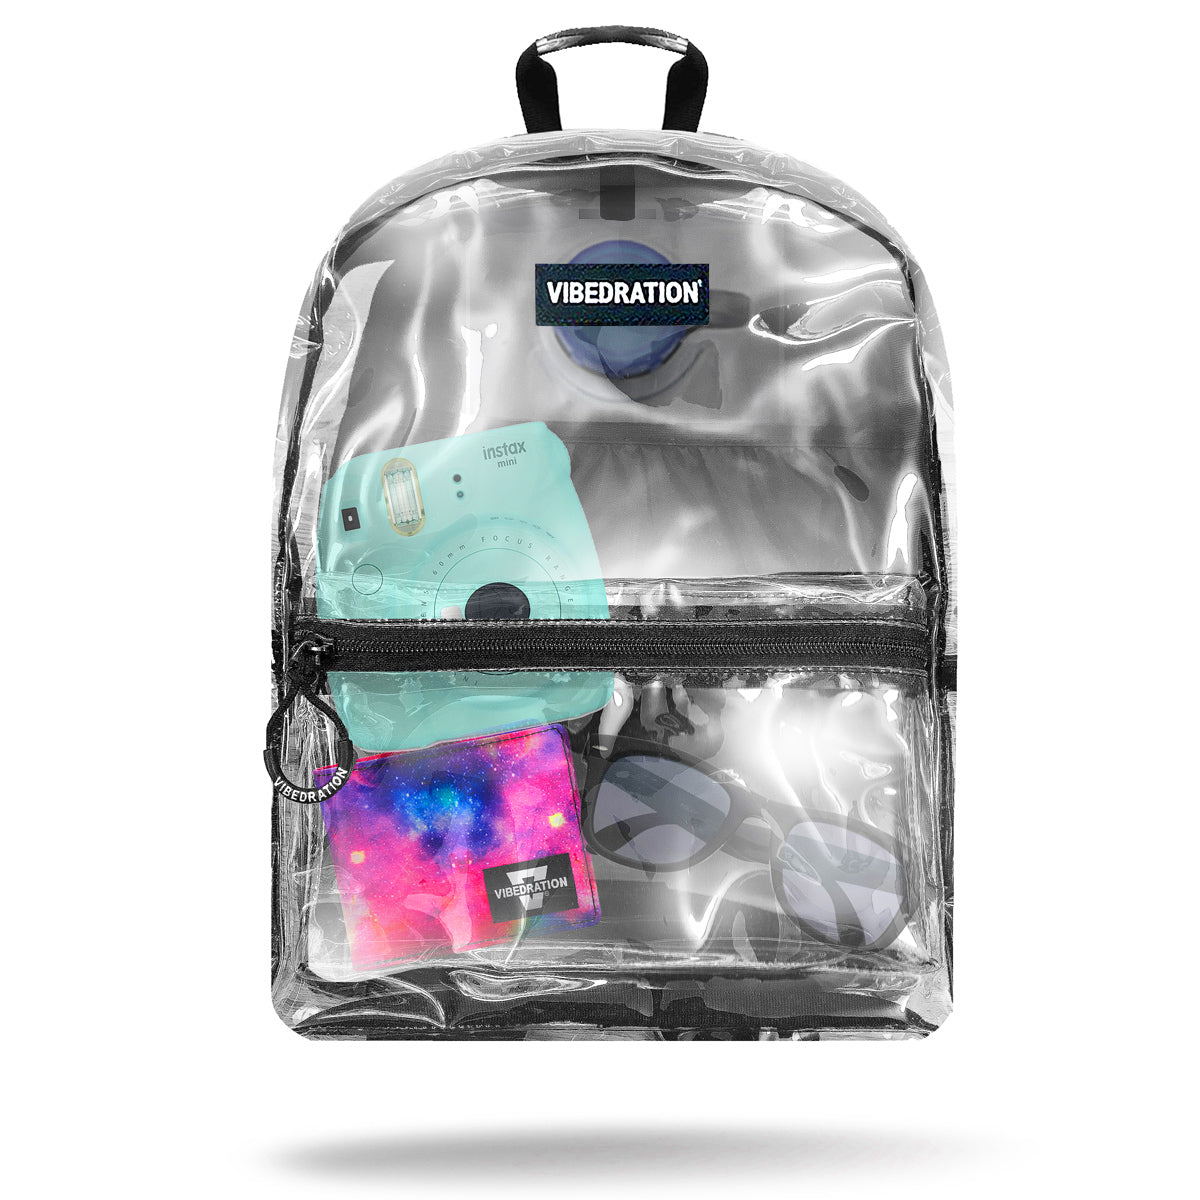 Clear Hydration Pack for raves and music festivals